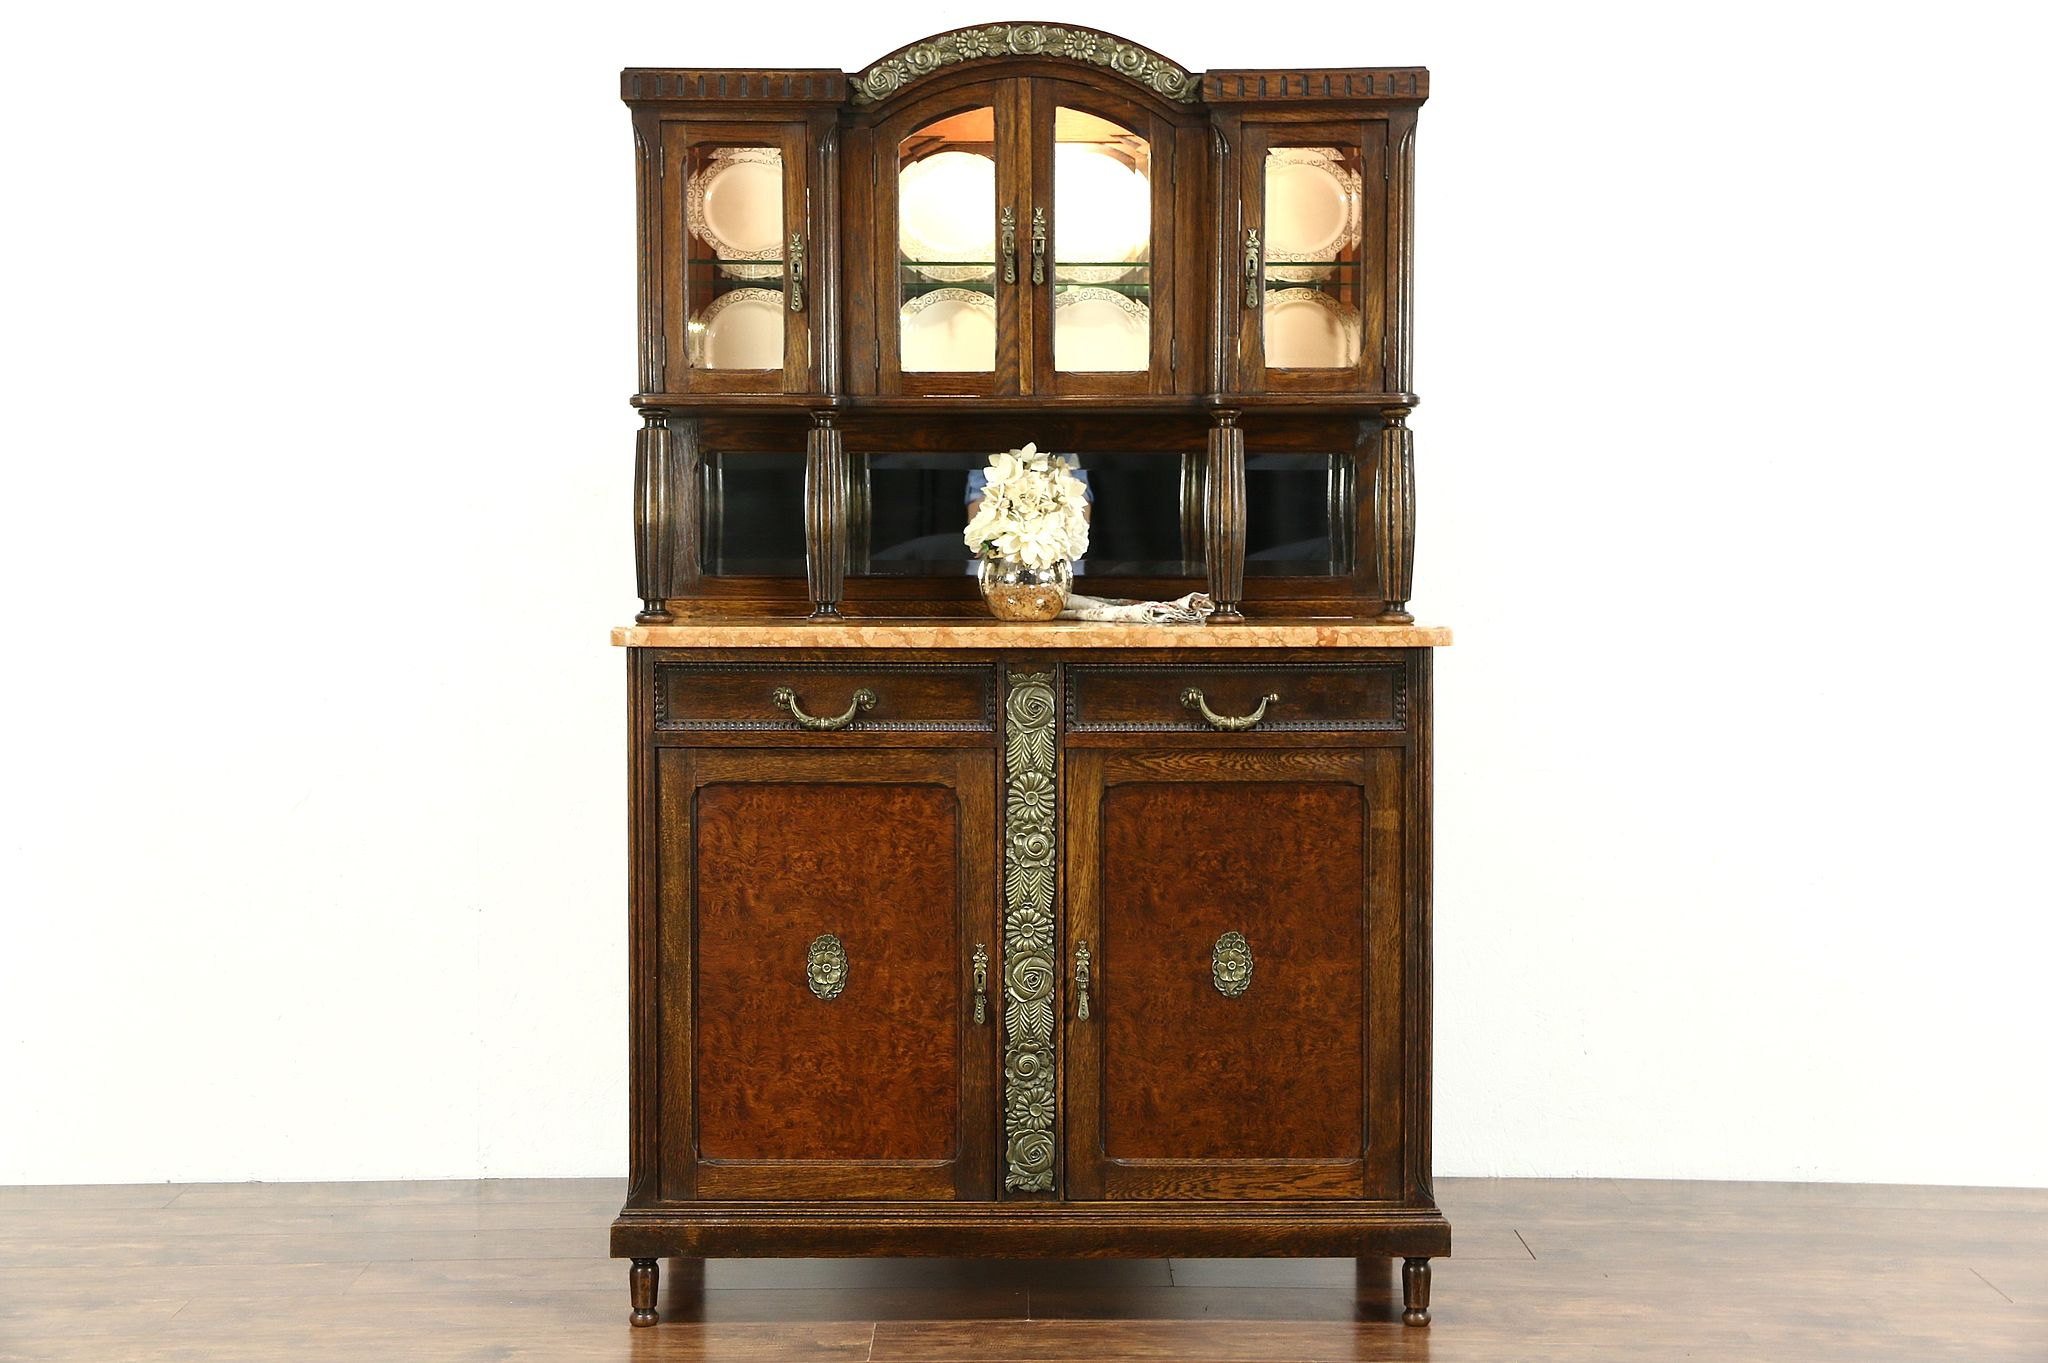 Art deco period furniture Painted Sold Art Deco 1920 Antique Marble Top Server Sideboard China Cabinet Belgium Harp Gallery Jeanluc Ferrand Antiquaire Sold Art Deco 1920 Antique Marble Top Server Sideboard China